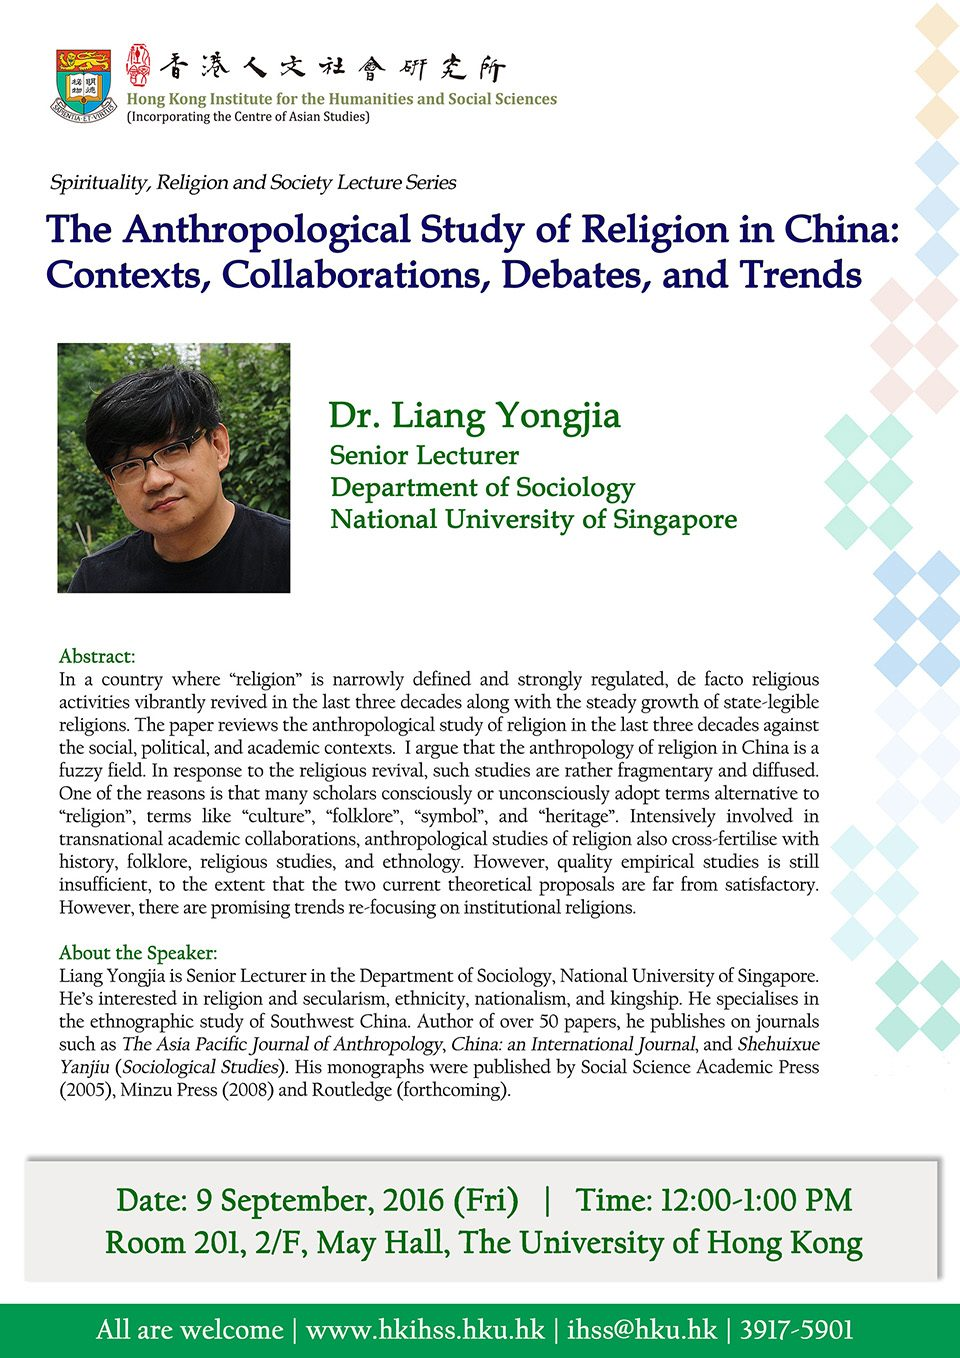 """Spirituality, Religion and Society Lecture Series """"The Anthropological Study of Religion in China: Contexts, Collaborations, Debates, and Trends"""" by Dr. Yongjia Liang (September 9, 2016)"""